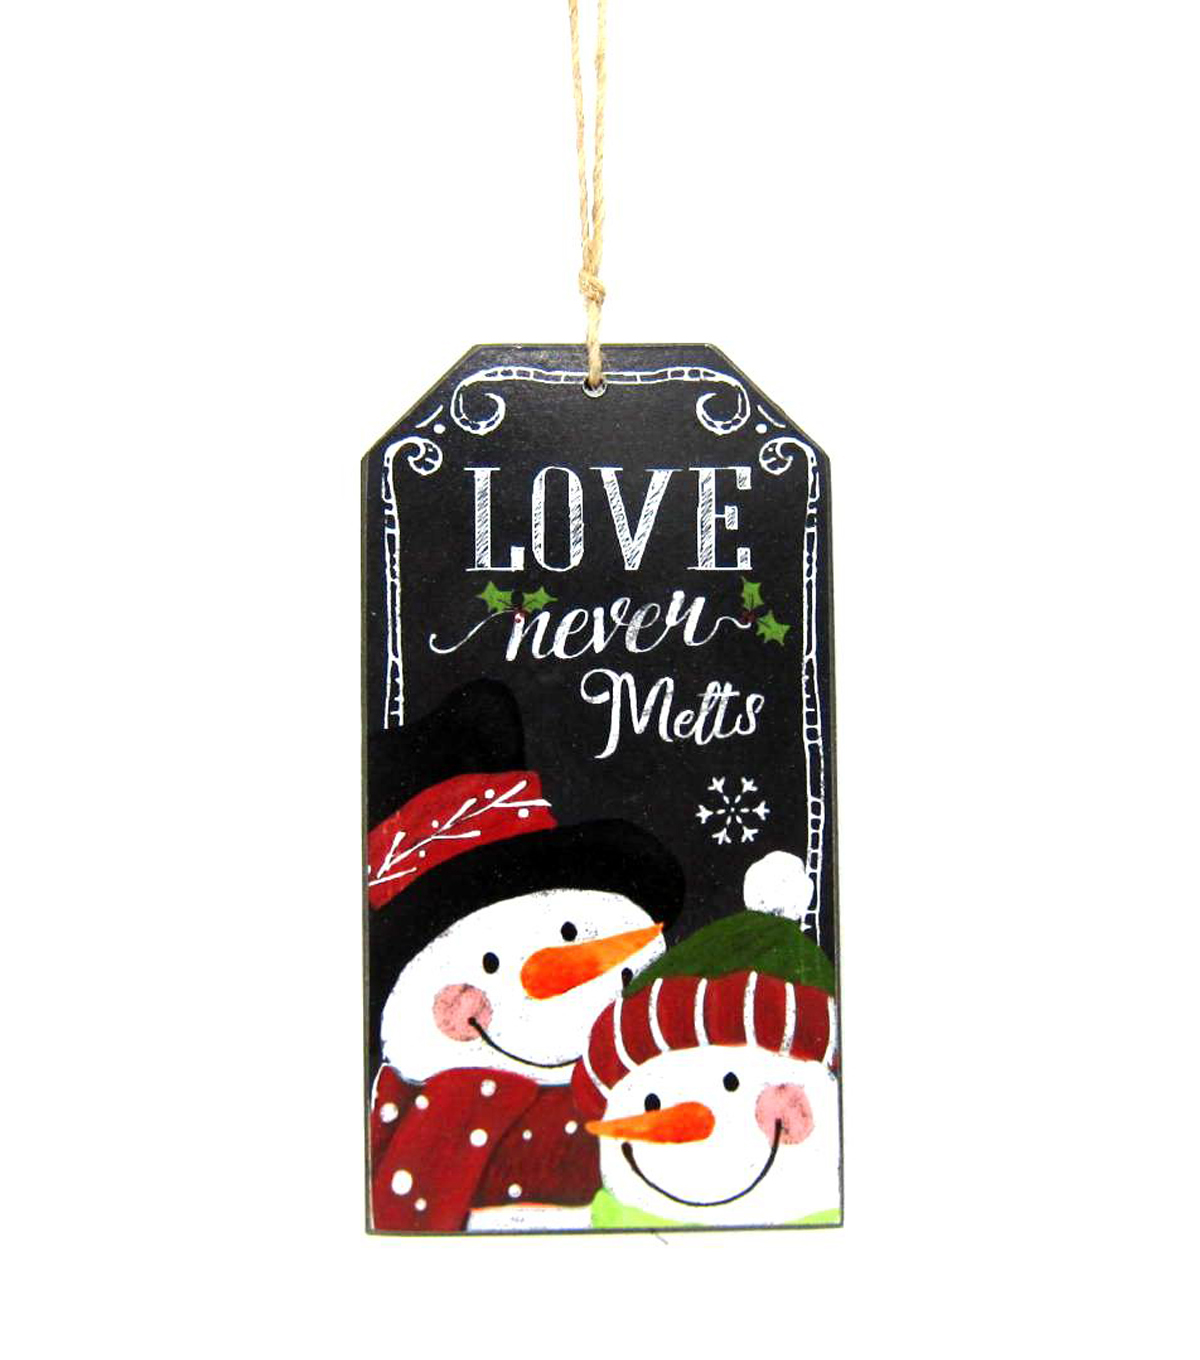 Maker's Holiday Love Never Melts Chalkboard Ornament